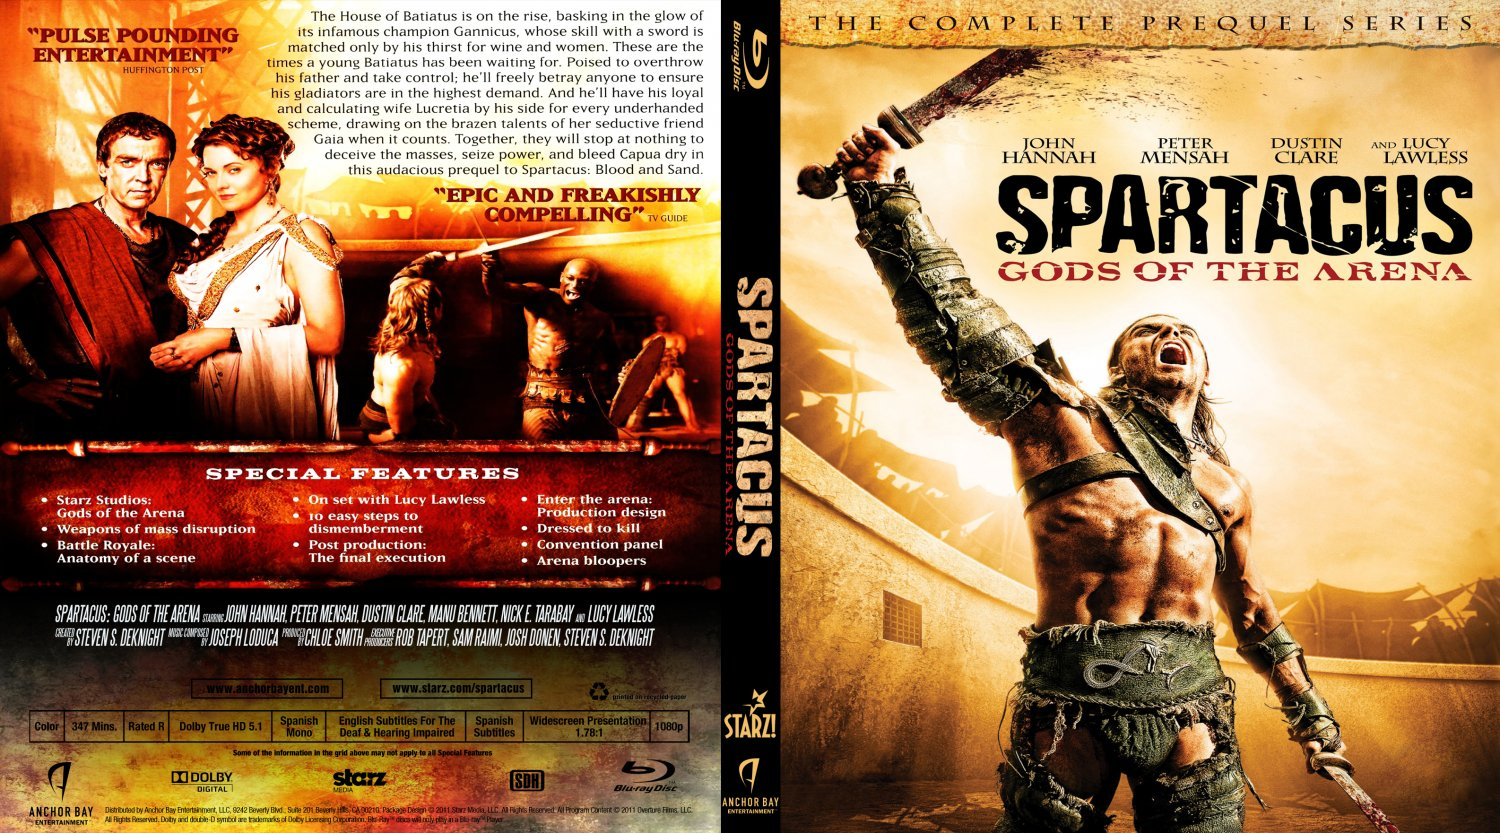 Spartacus Gods Of The Arena Cover - Hot Girls Wallpaper